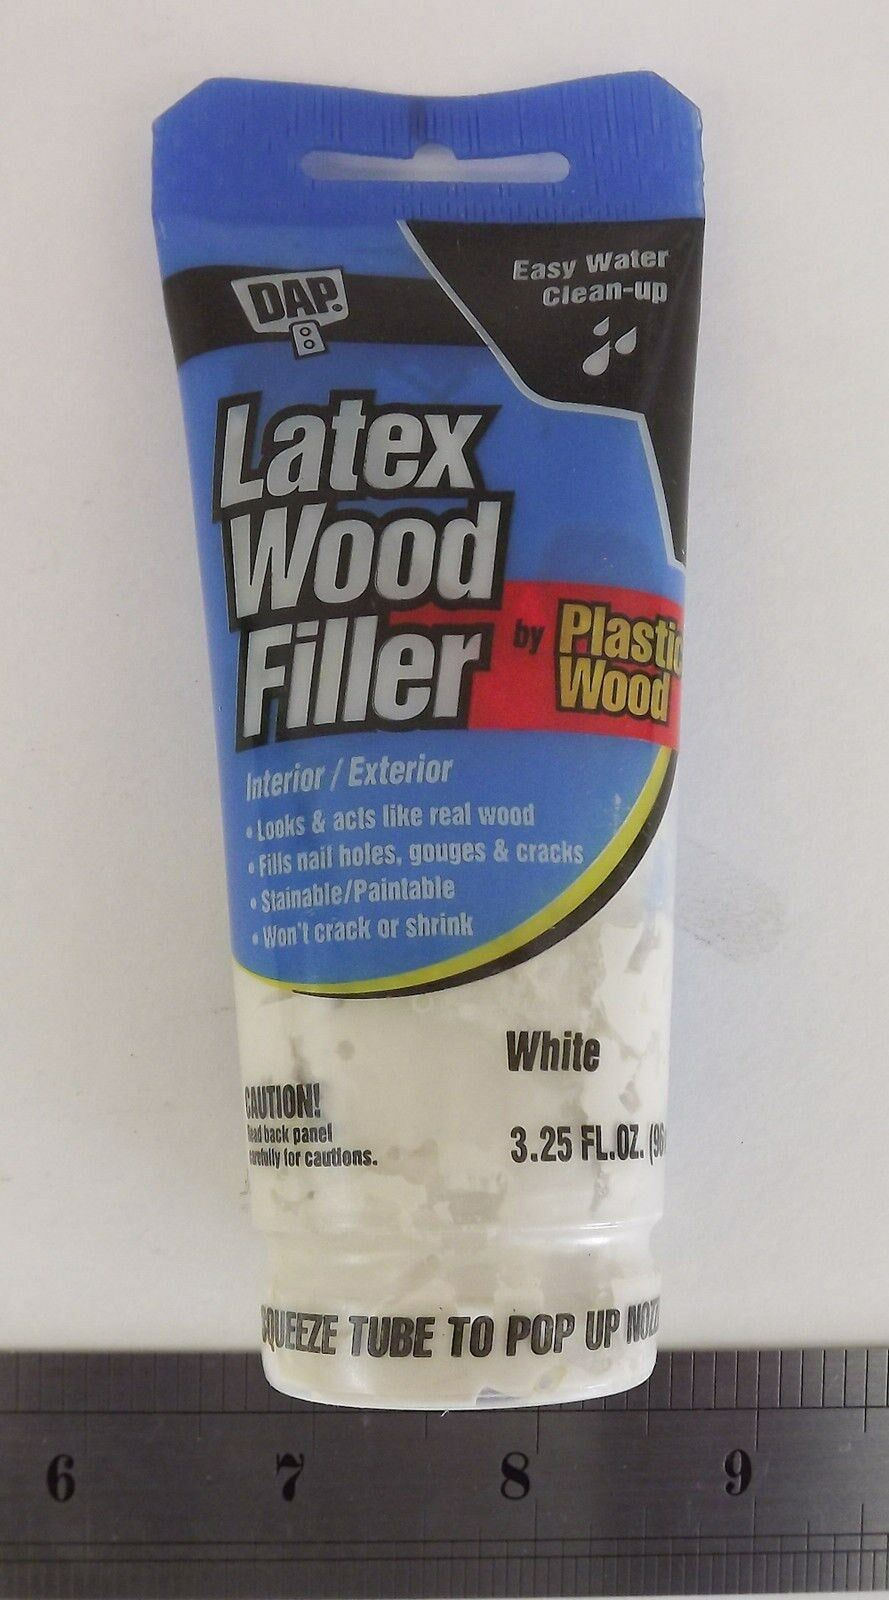 New Latex Wood Filler by Plastic Wood 3.25 FL.OZ. Color: White 1